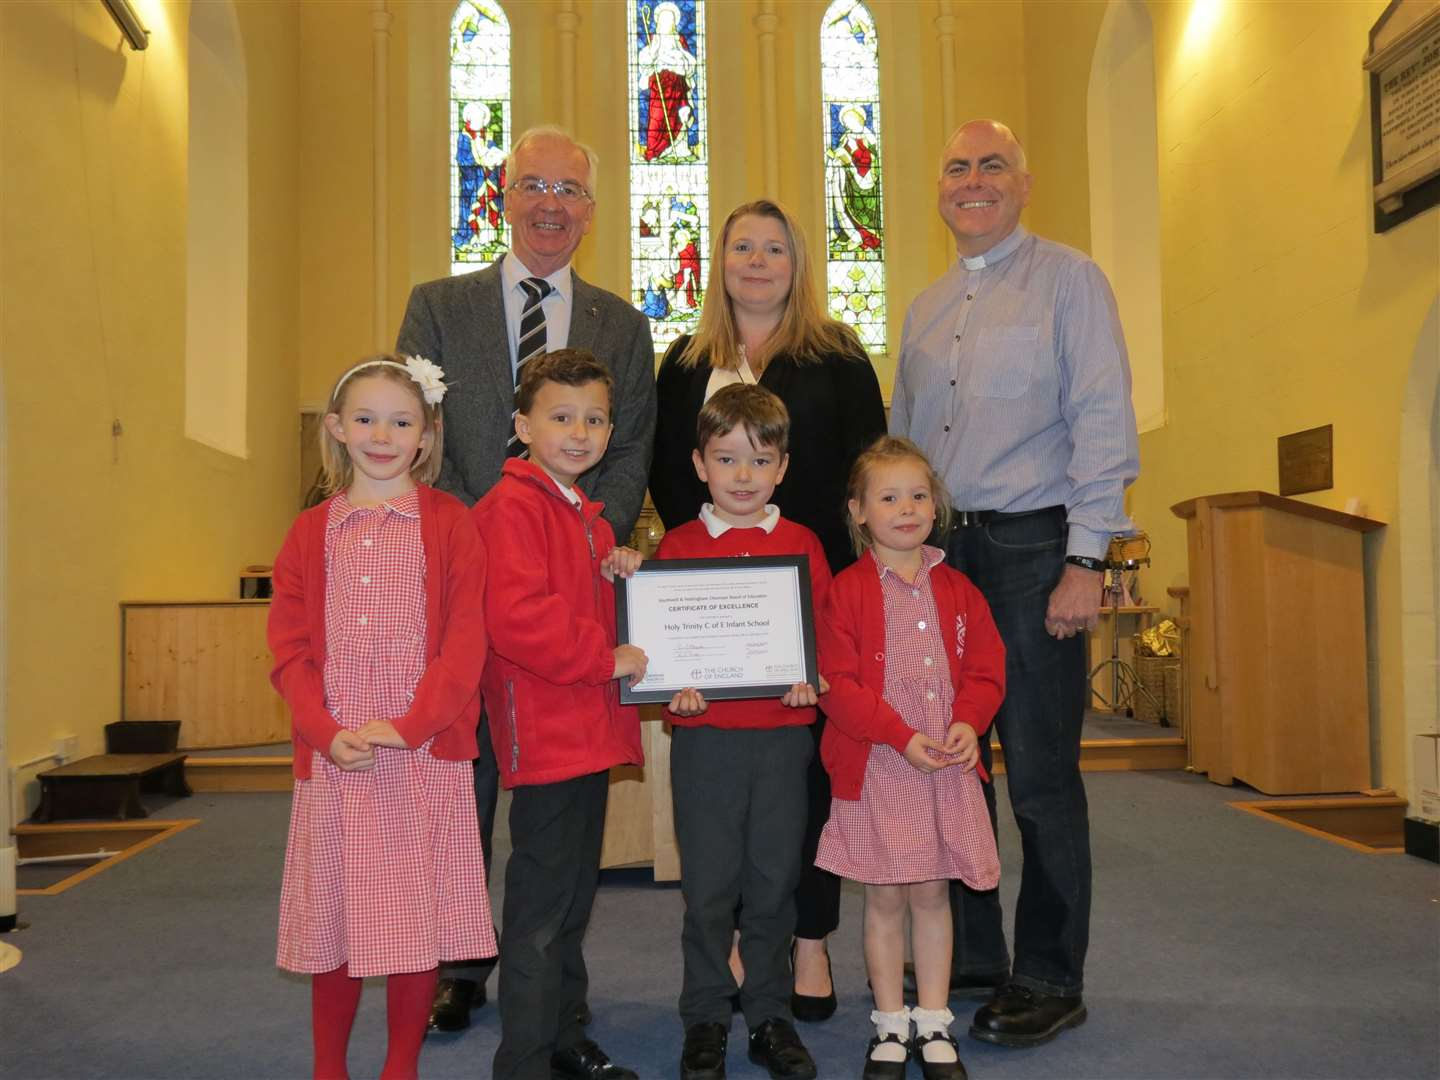 Tony Derby, executive headteacher Marie Thompson and Reverend Andrew Porter from Holy Trinity Church, Southwell with pupils Isabelle Jardine, Harry Milligan, Samuel Thompson and Millie Everington.